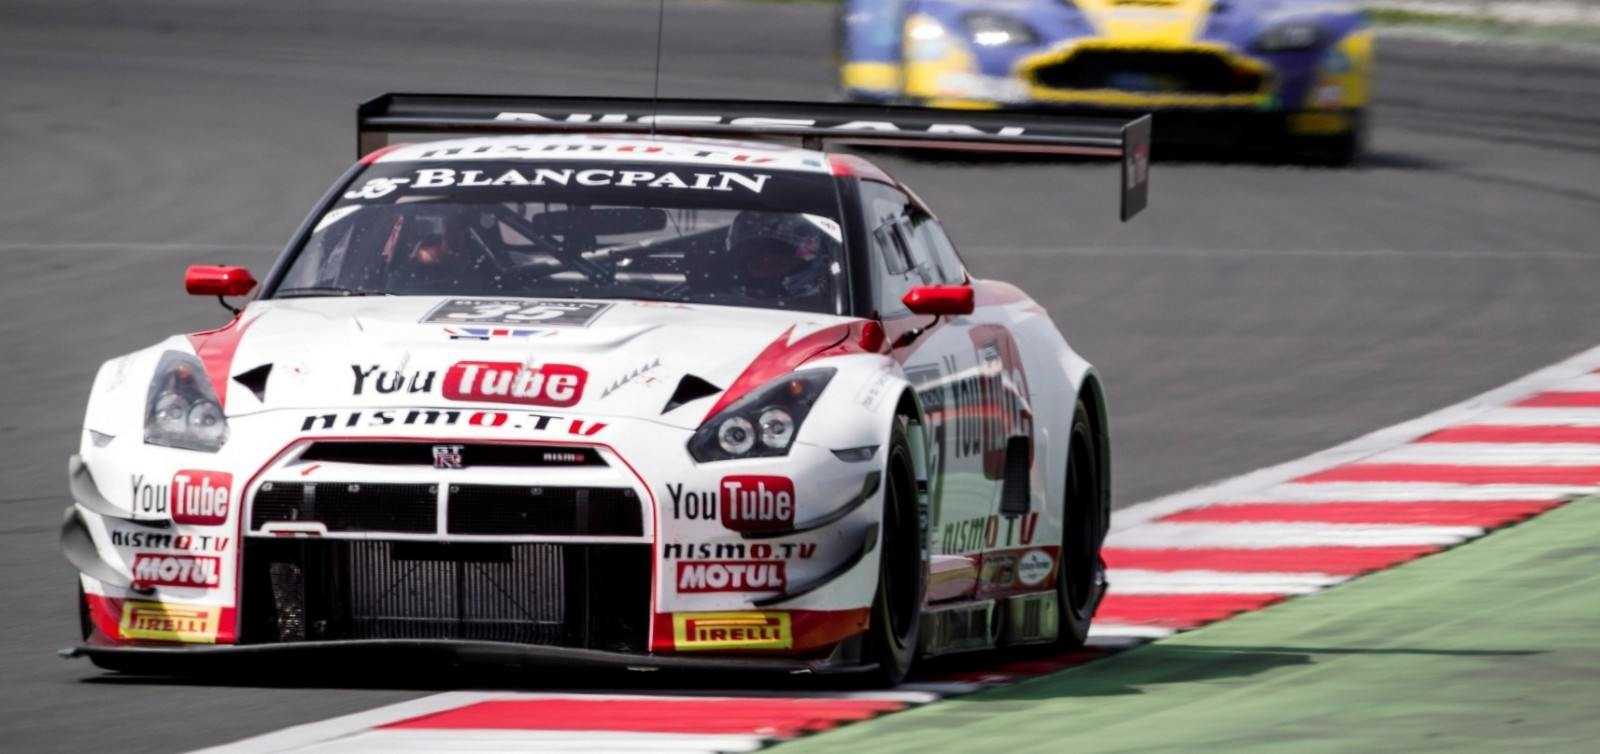 Nissan GT-R GT3 COnfirmed for 2014 Nurbugring 24H Race in June 23